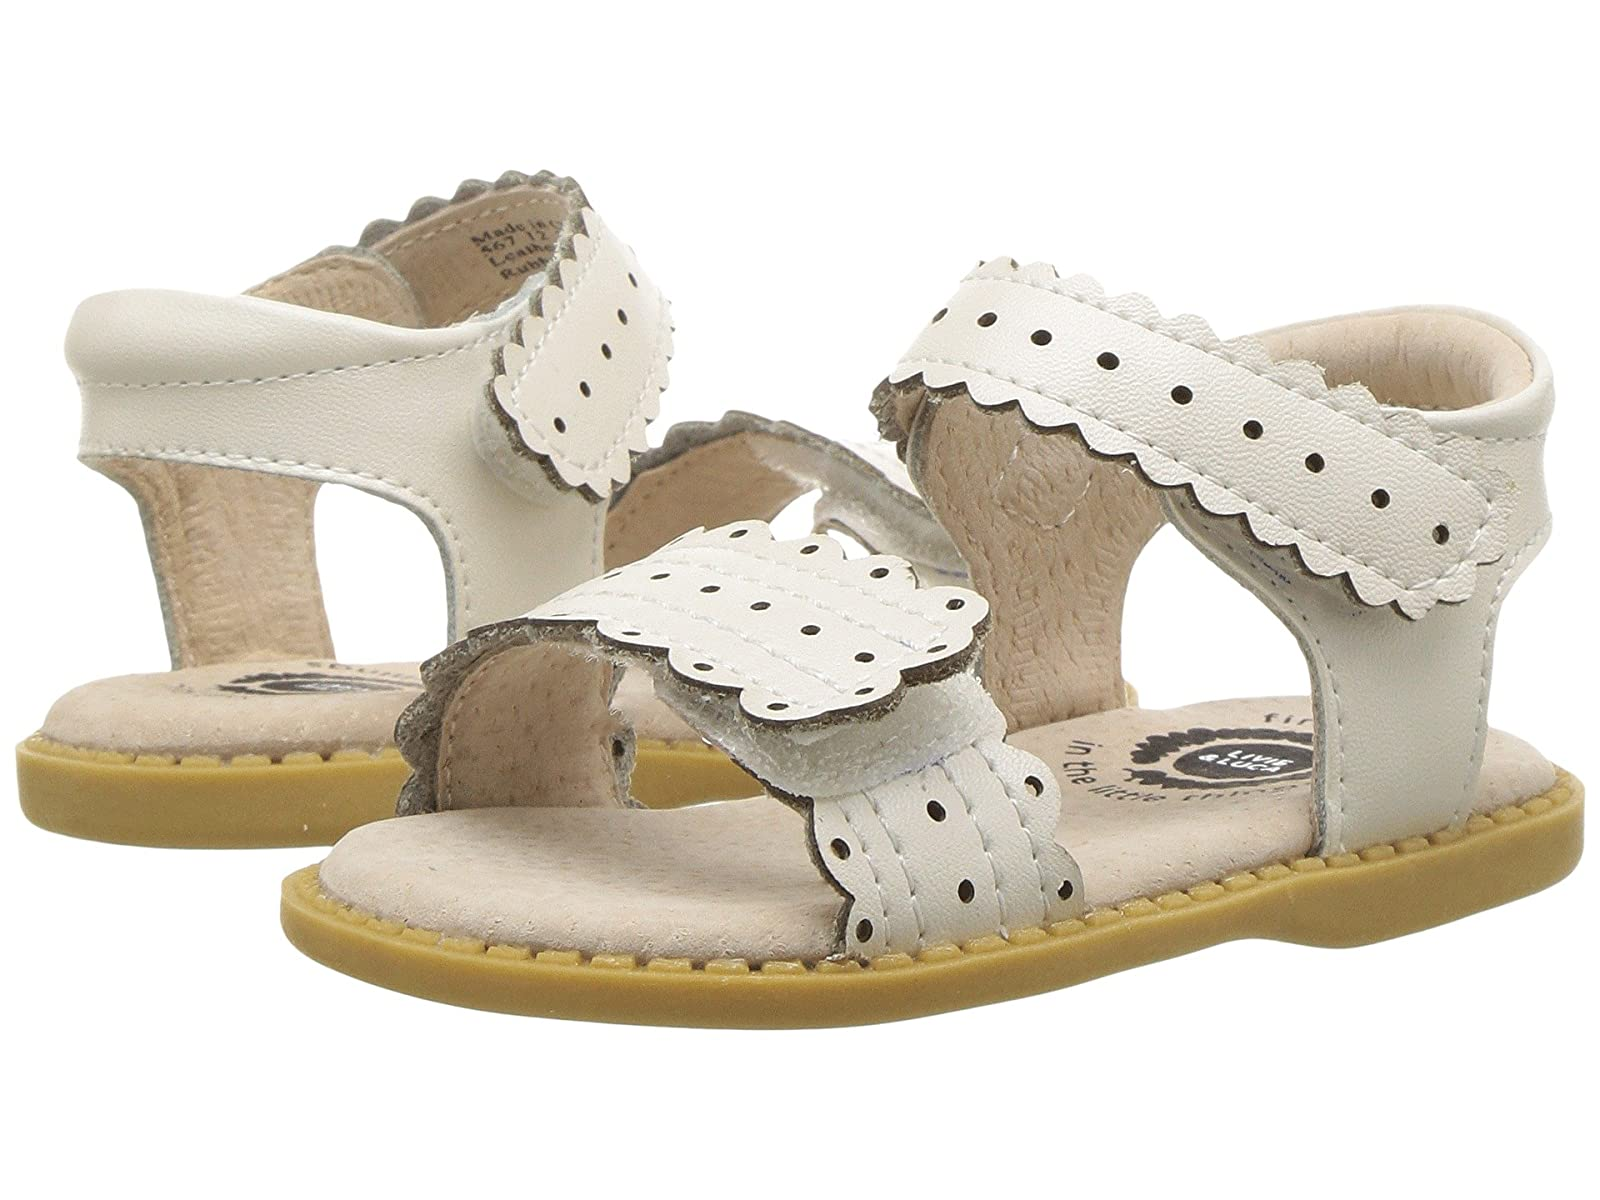 Livie & Luca Posey (Toddler/Little Kid)Atmospheric grades have affordable shoes